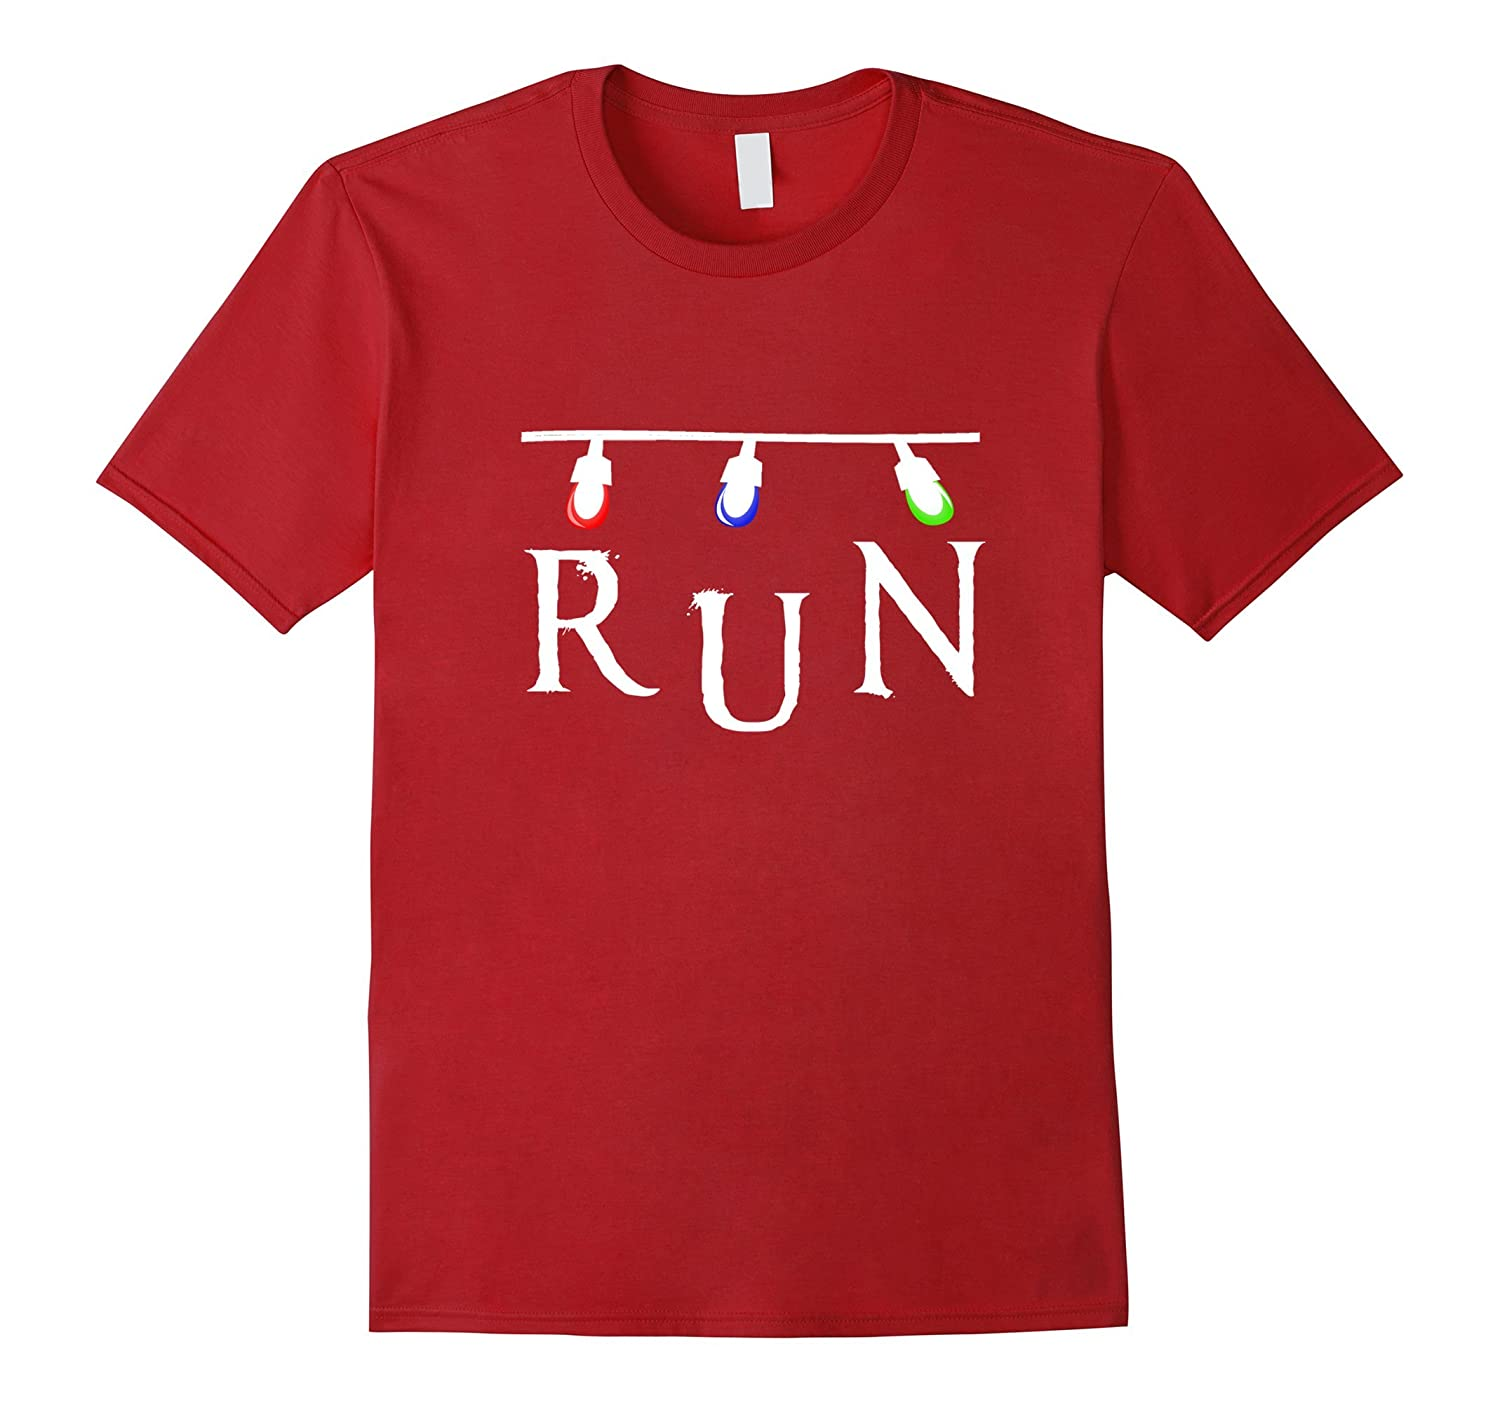 Run! Strange Christmas Lights T-Shirt - TV Show Shirts-ANZ - Anztshirt